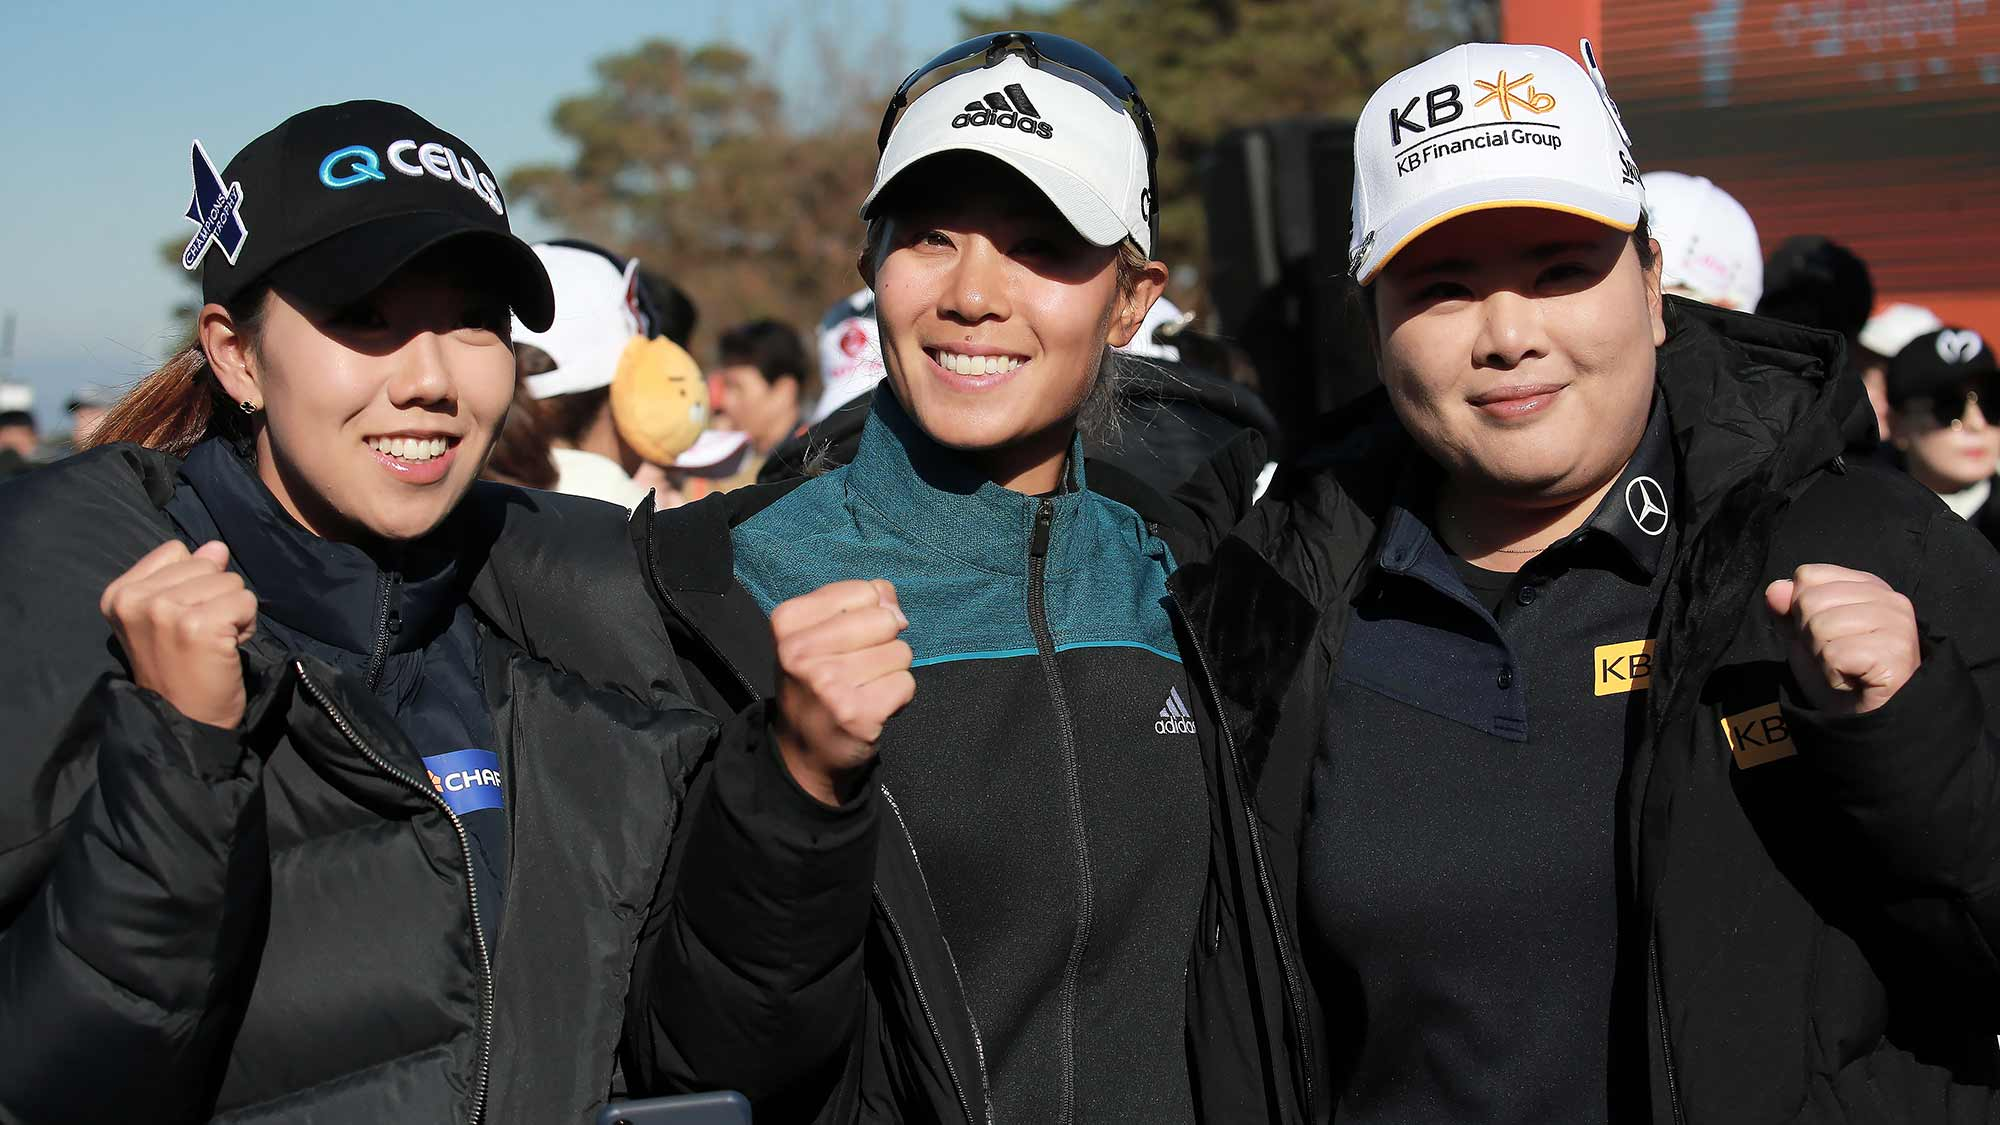 Jenny Shin, Danielle Kang and Inbee Park pose for a photo during the Orange Life Champions Trophy Inbee Park Invitational at Blue One The Honors Country Club in Gyeongju, Republic of Korea